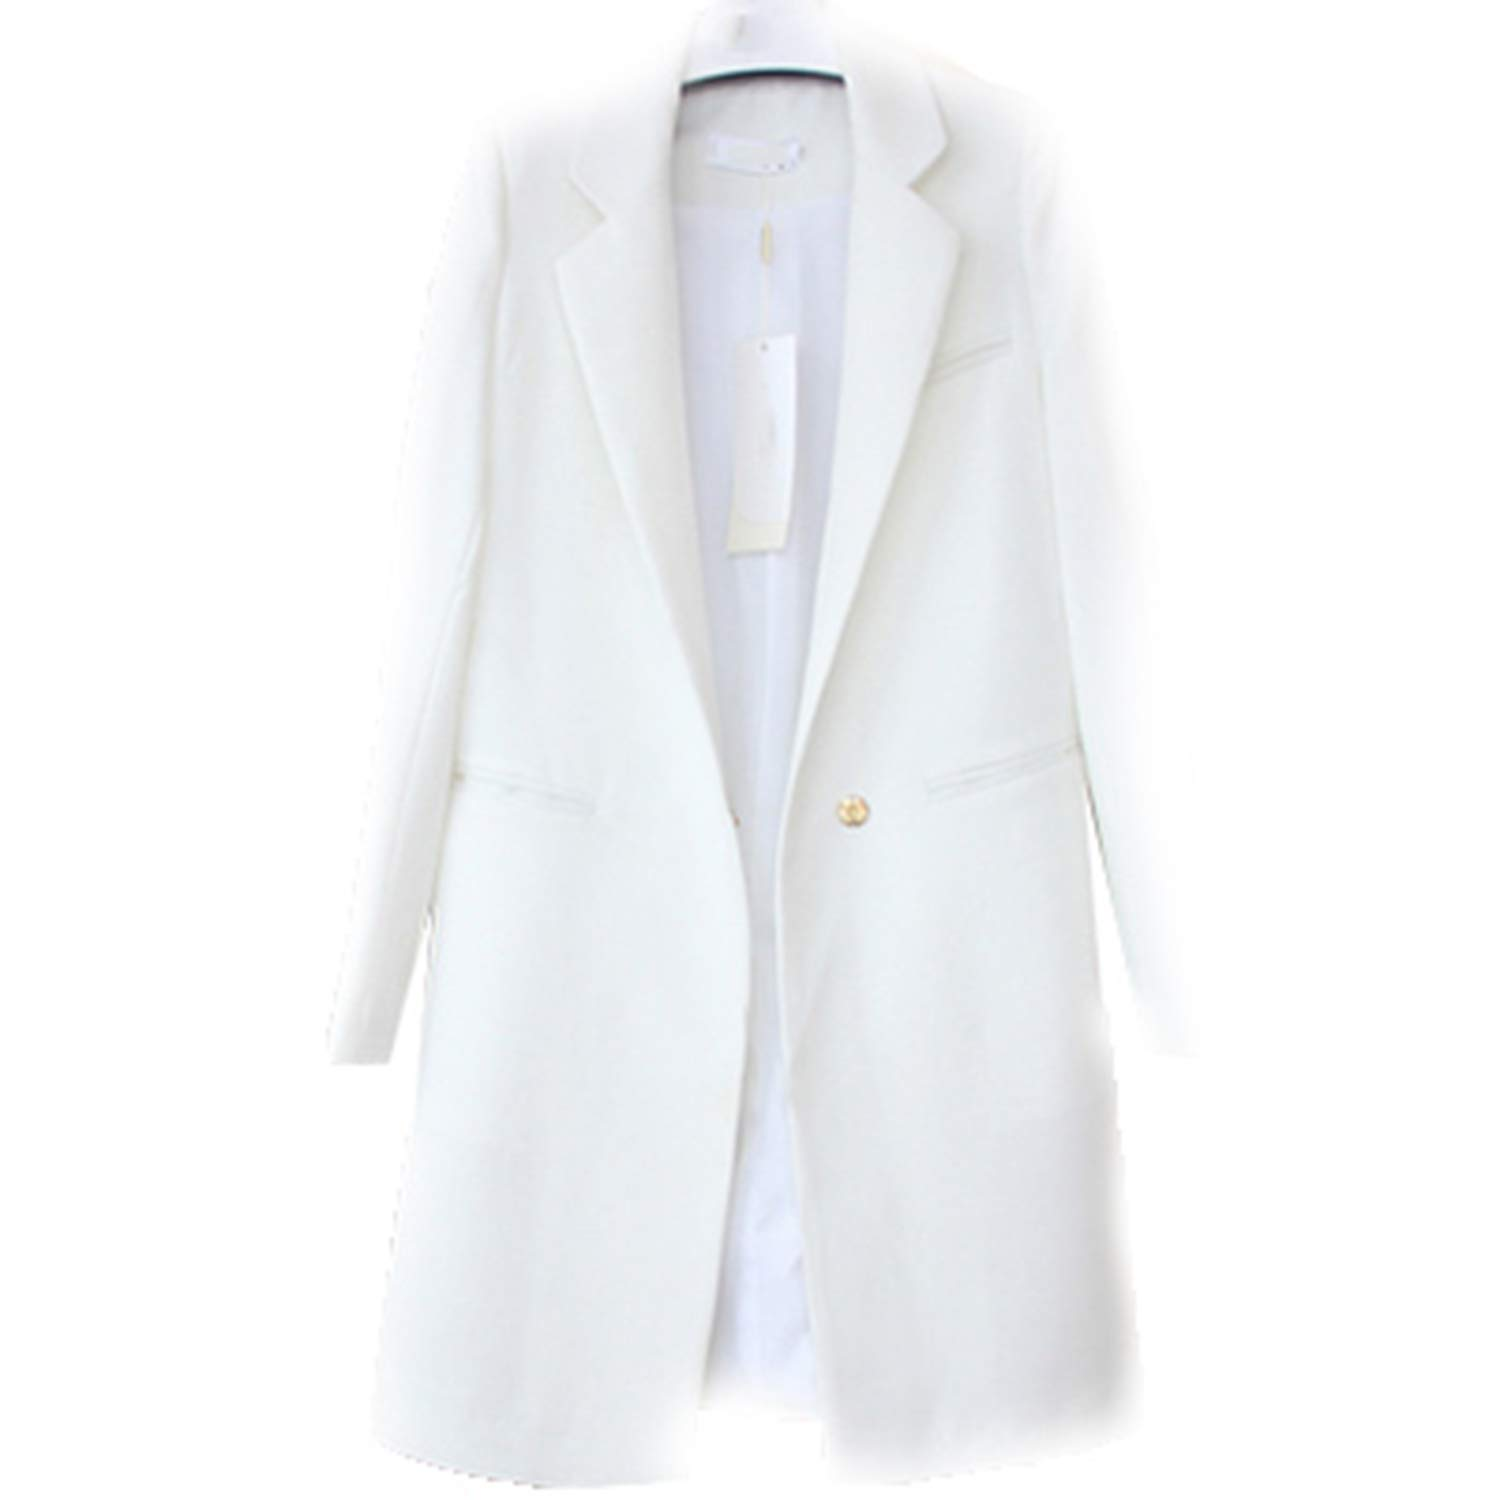 Molif Women Blazers Jackets Spring Autumn Casual Long Women Suits Wide Waisted Solid Female Jacket White S